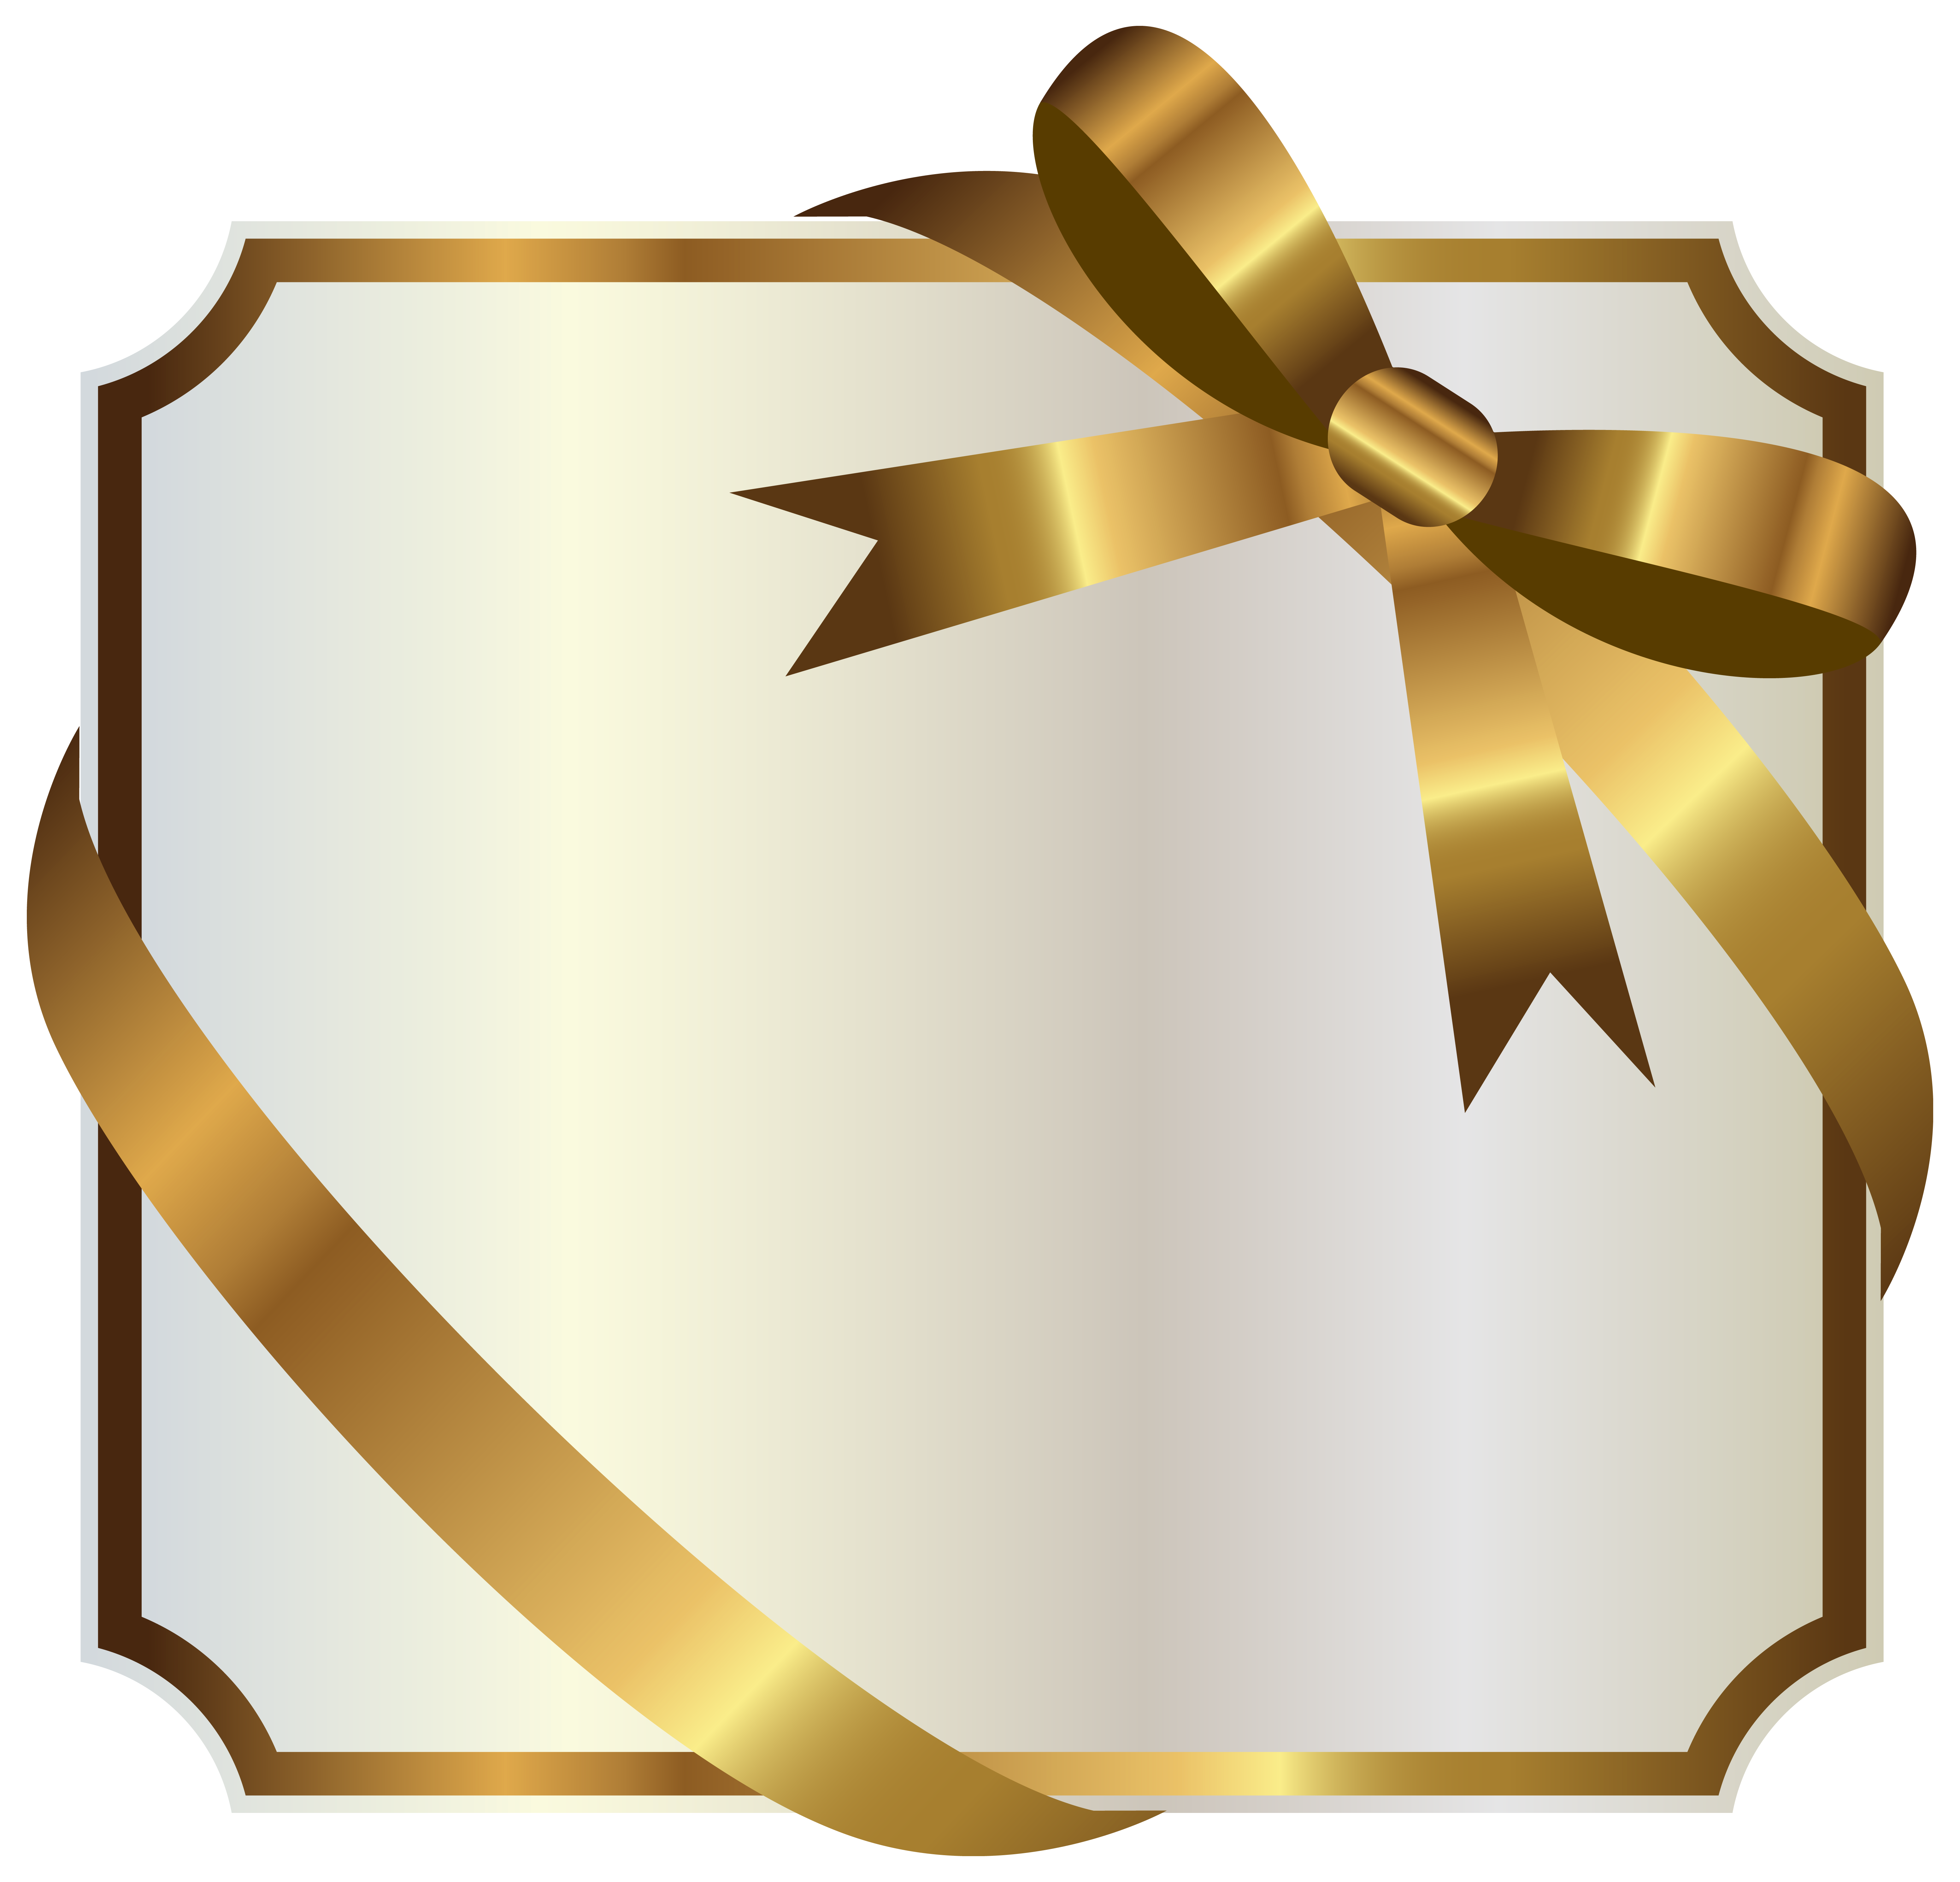 graphic black and white download With gold bow png. White label clipart